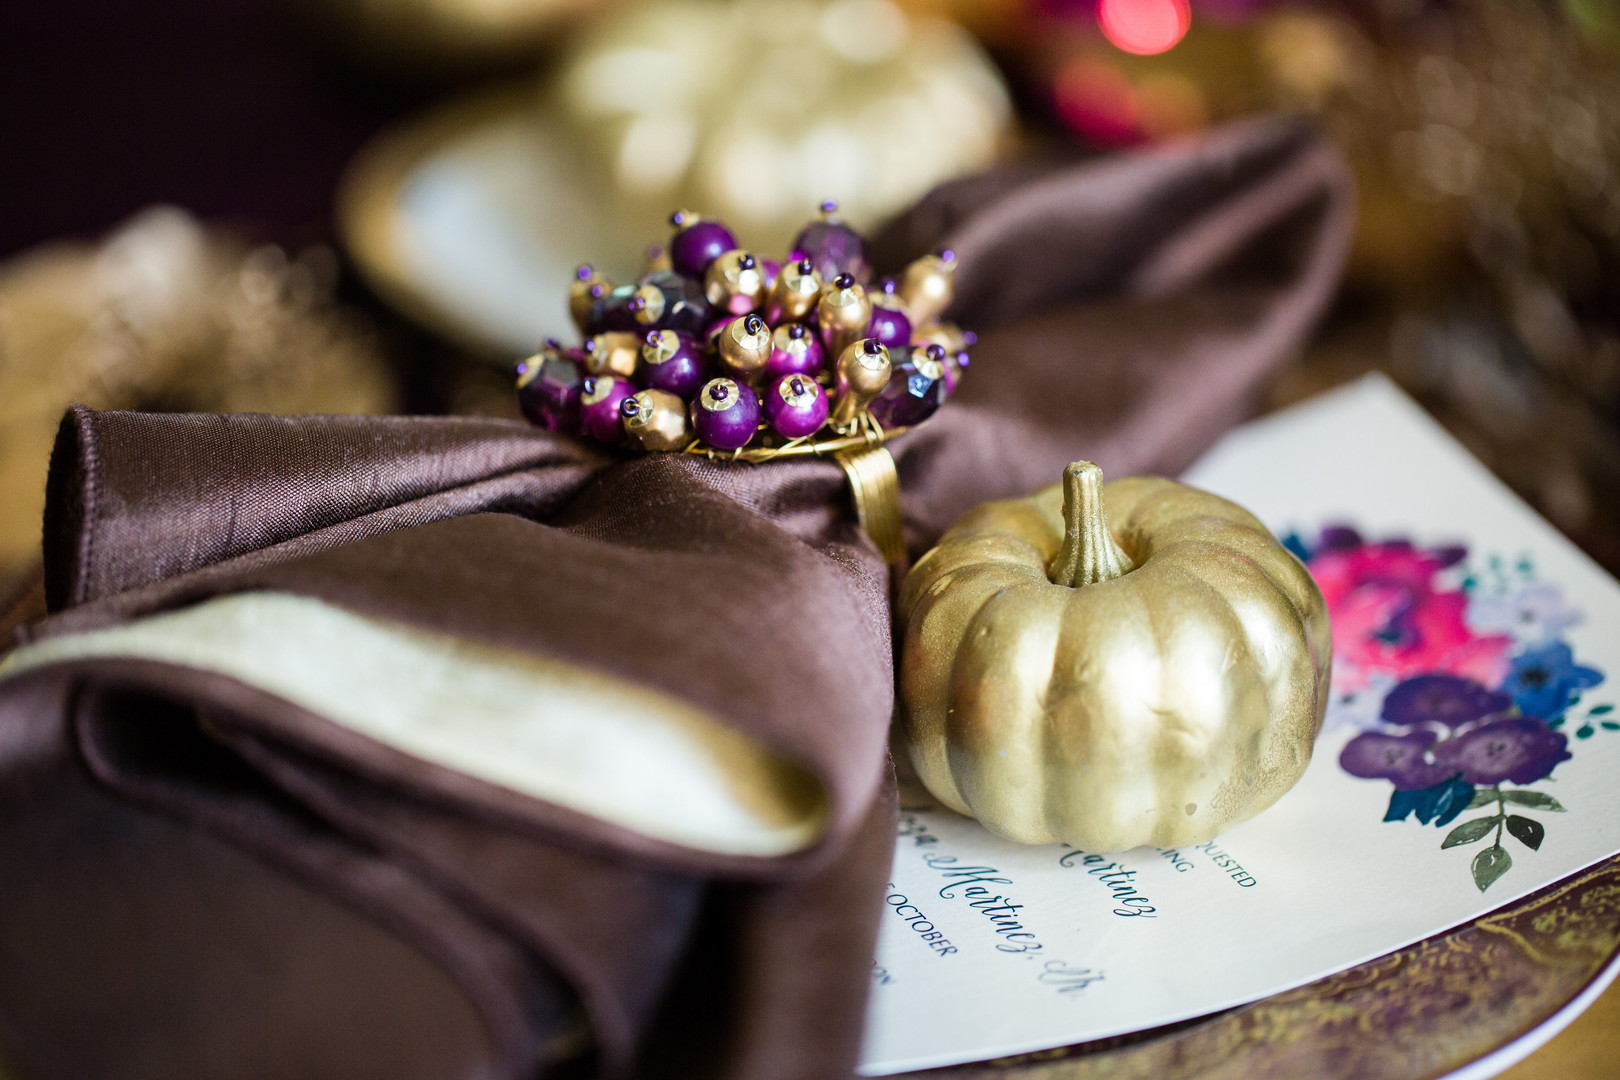 Looking for ideas for centerpieces, tablescapes and place cards for your Thanksgiving table? This elegant jewel toned rustic Thanksgiving tablescape is something you could recreate at home! Check out all the decorations and photos when you click here. #Thanksgiving #Thanksgivingtable #holidaydecor #parties365